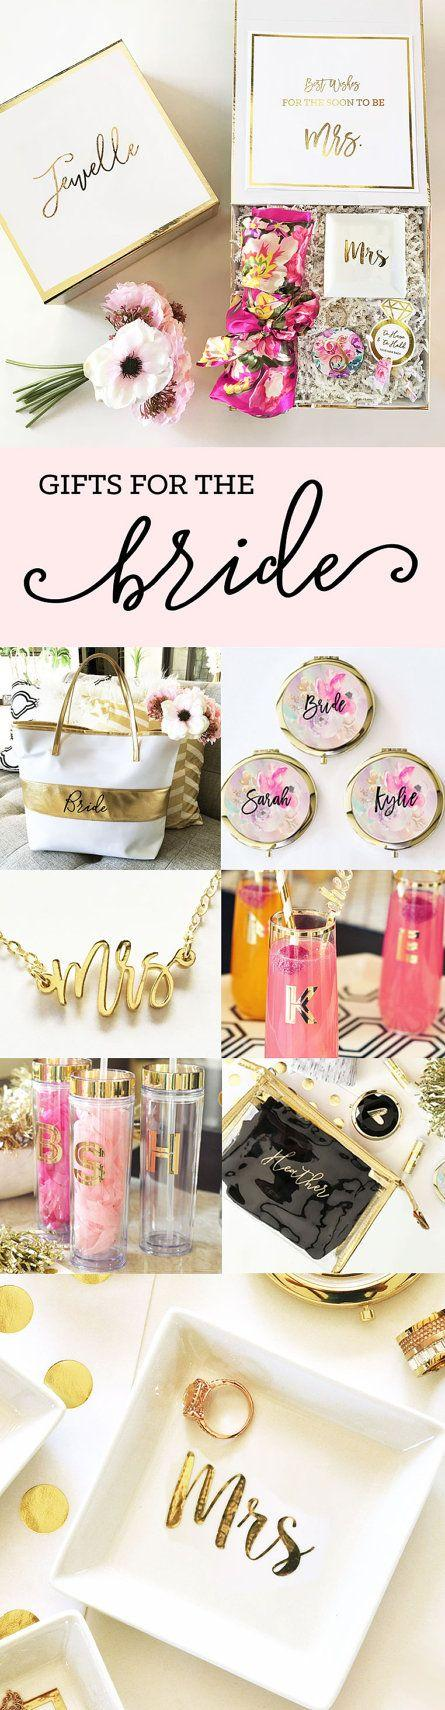 Wedding - Gifts For The Bride From Her Bridesmaids